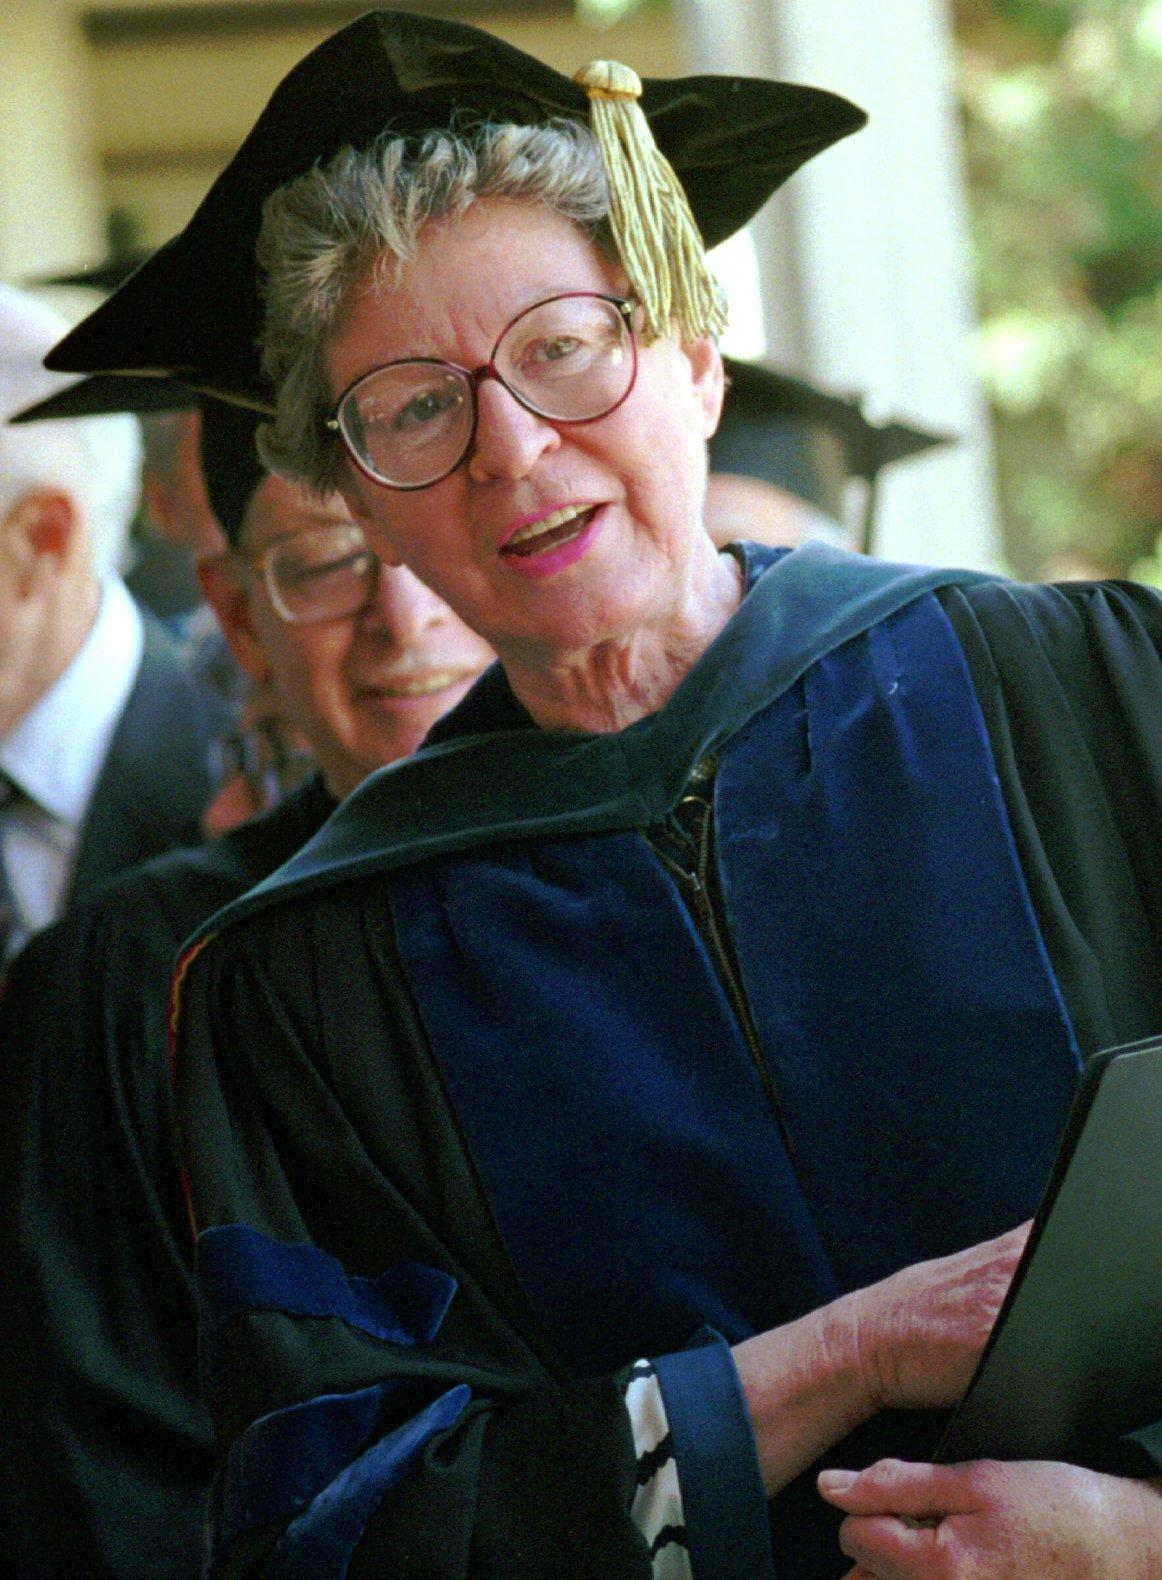 In 1994, Rhoda Dorsey, the president of Goucher College, awaits the beginning of the graduation procession at her last commencement after 21 years in charge of Goucher.